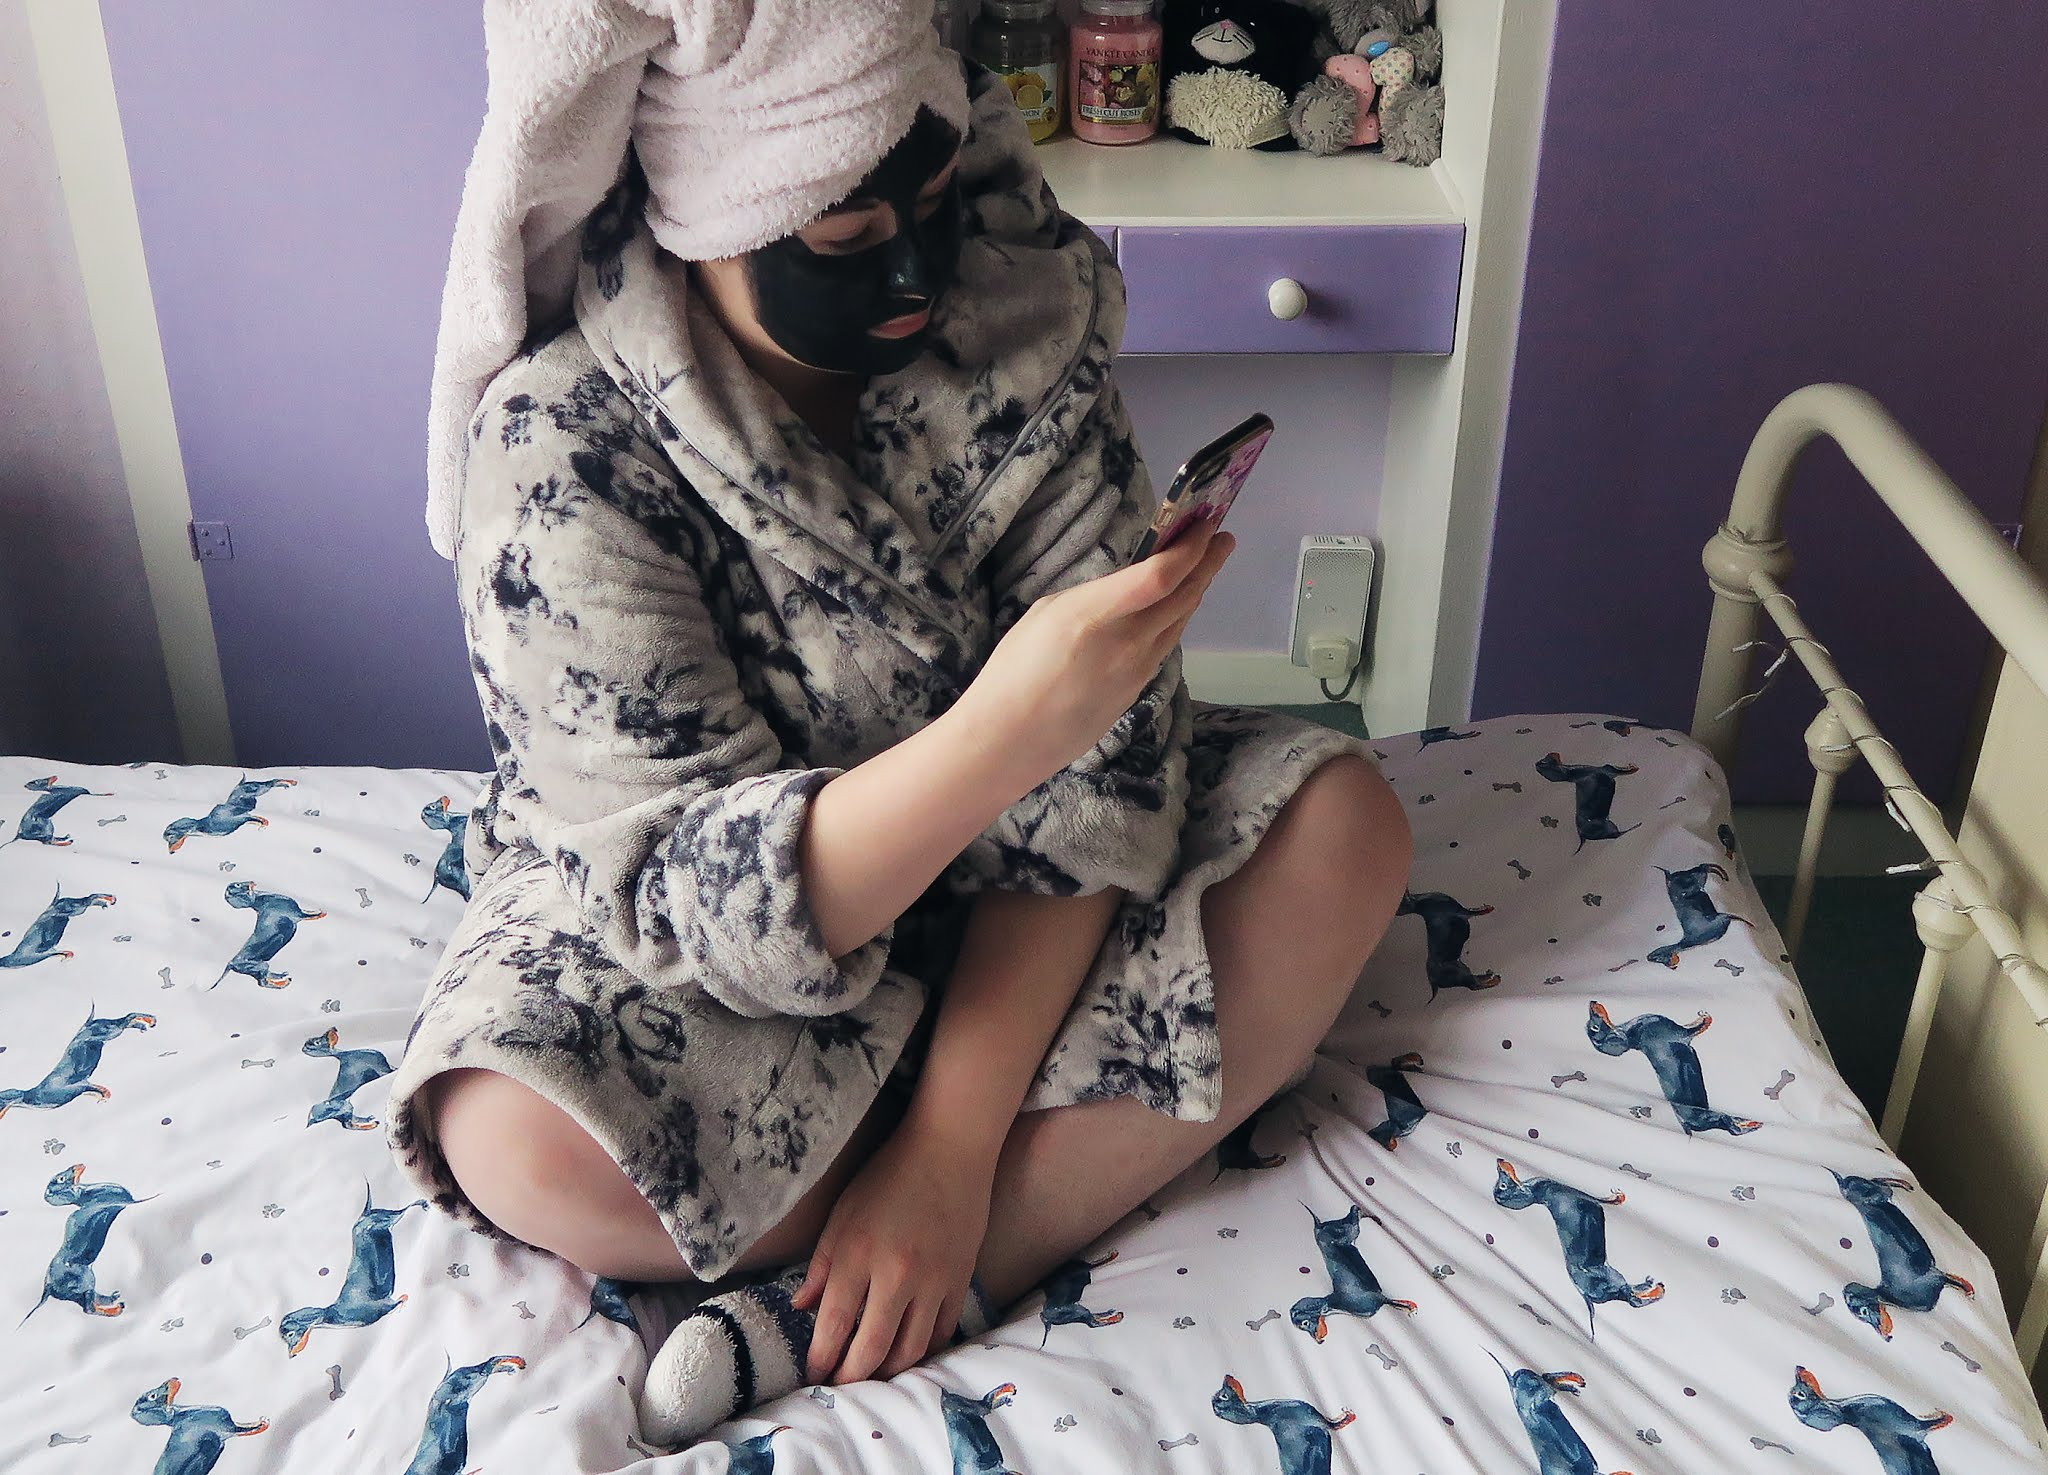 Grace is sitting on the bed in her dressing gown. Her hair is wrapped in a towel and she has a charcoal facemask on